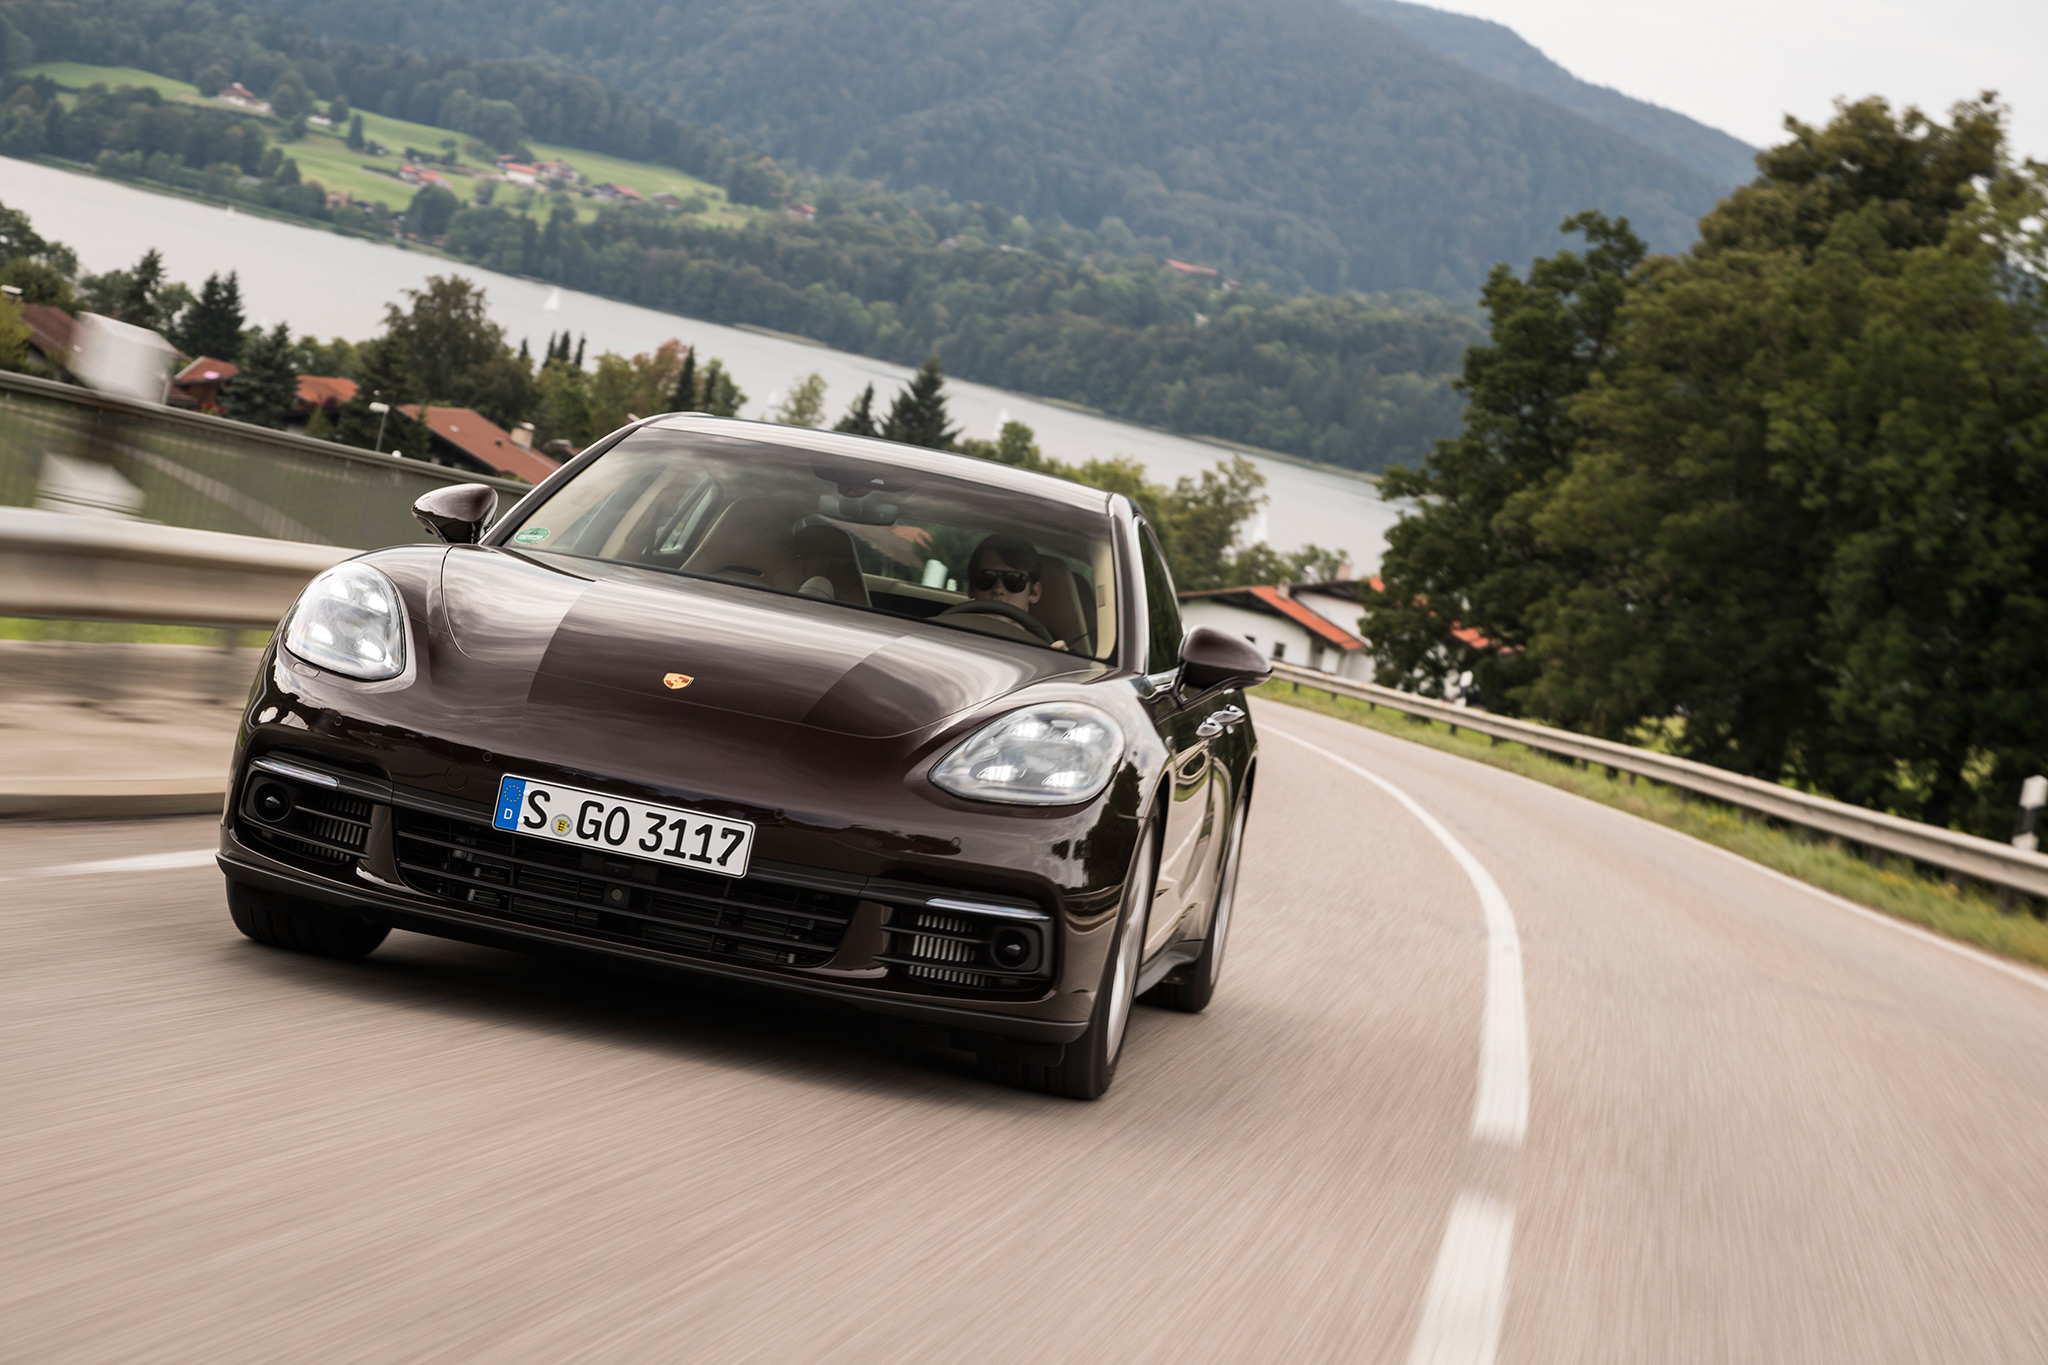 2017 porsche panamera 4s first drive review automobile magazine. Black Bedroom Furniture Sets. Home Design Ideas